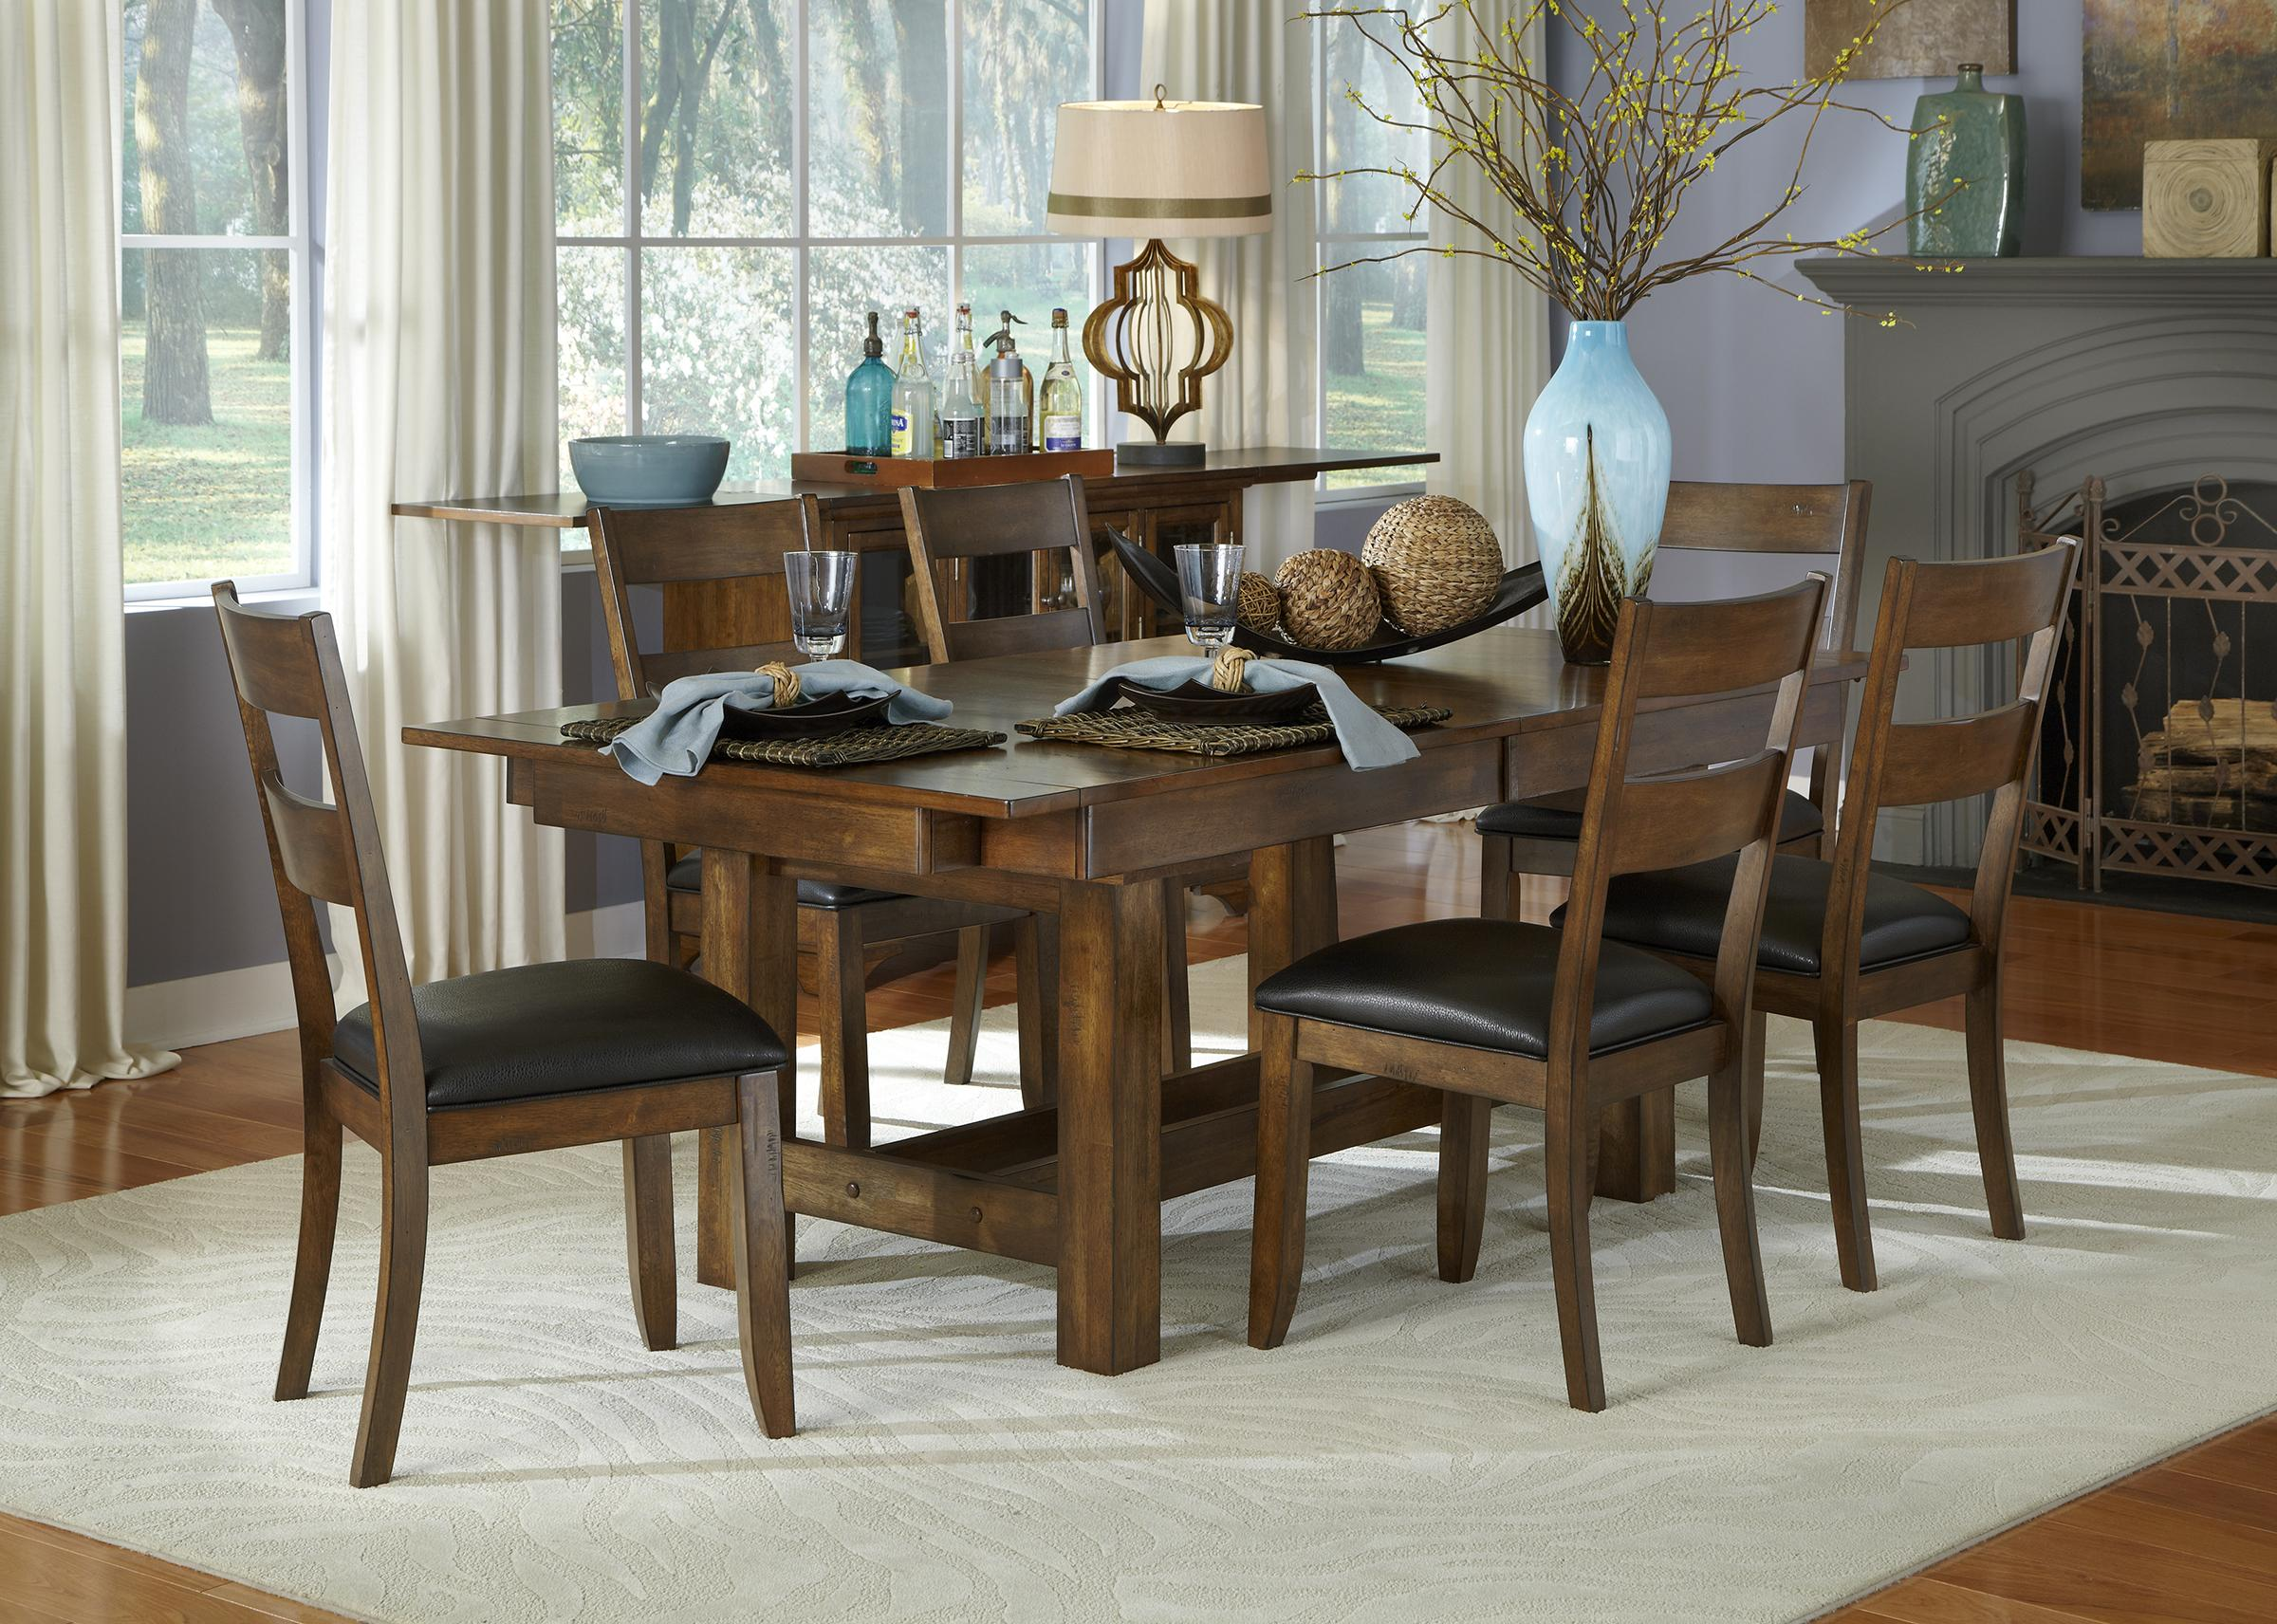 Aamerica mariposa casual dining room group wayside for Casual dining room photos